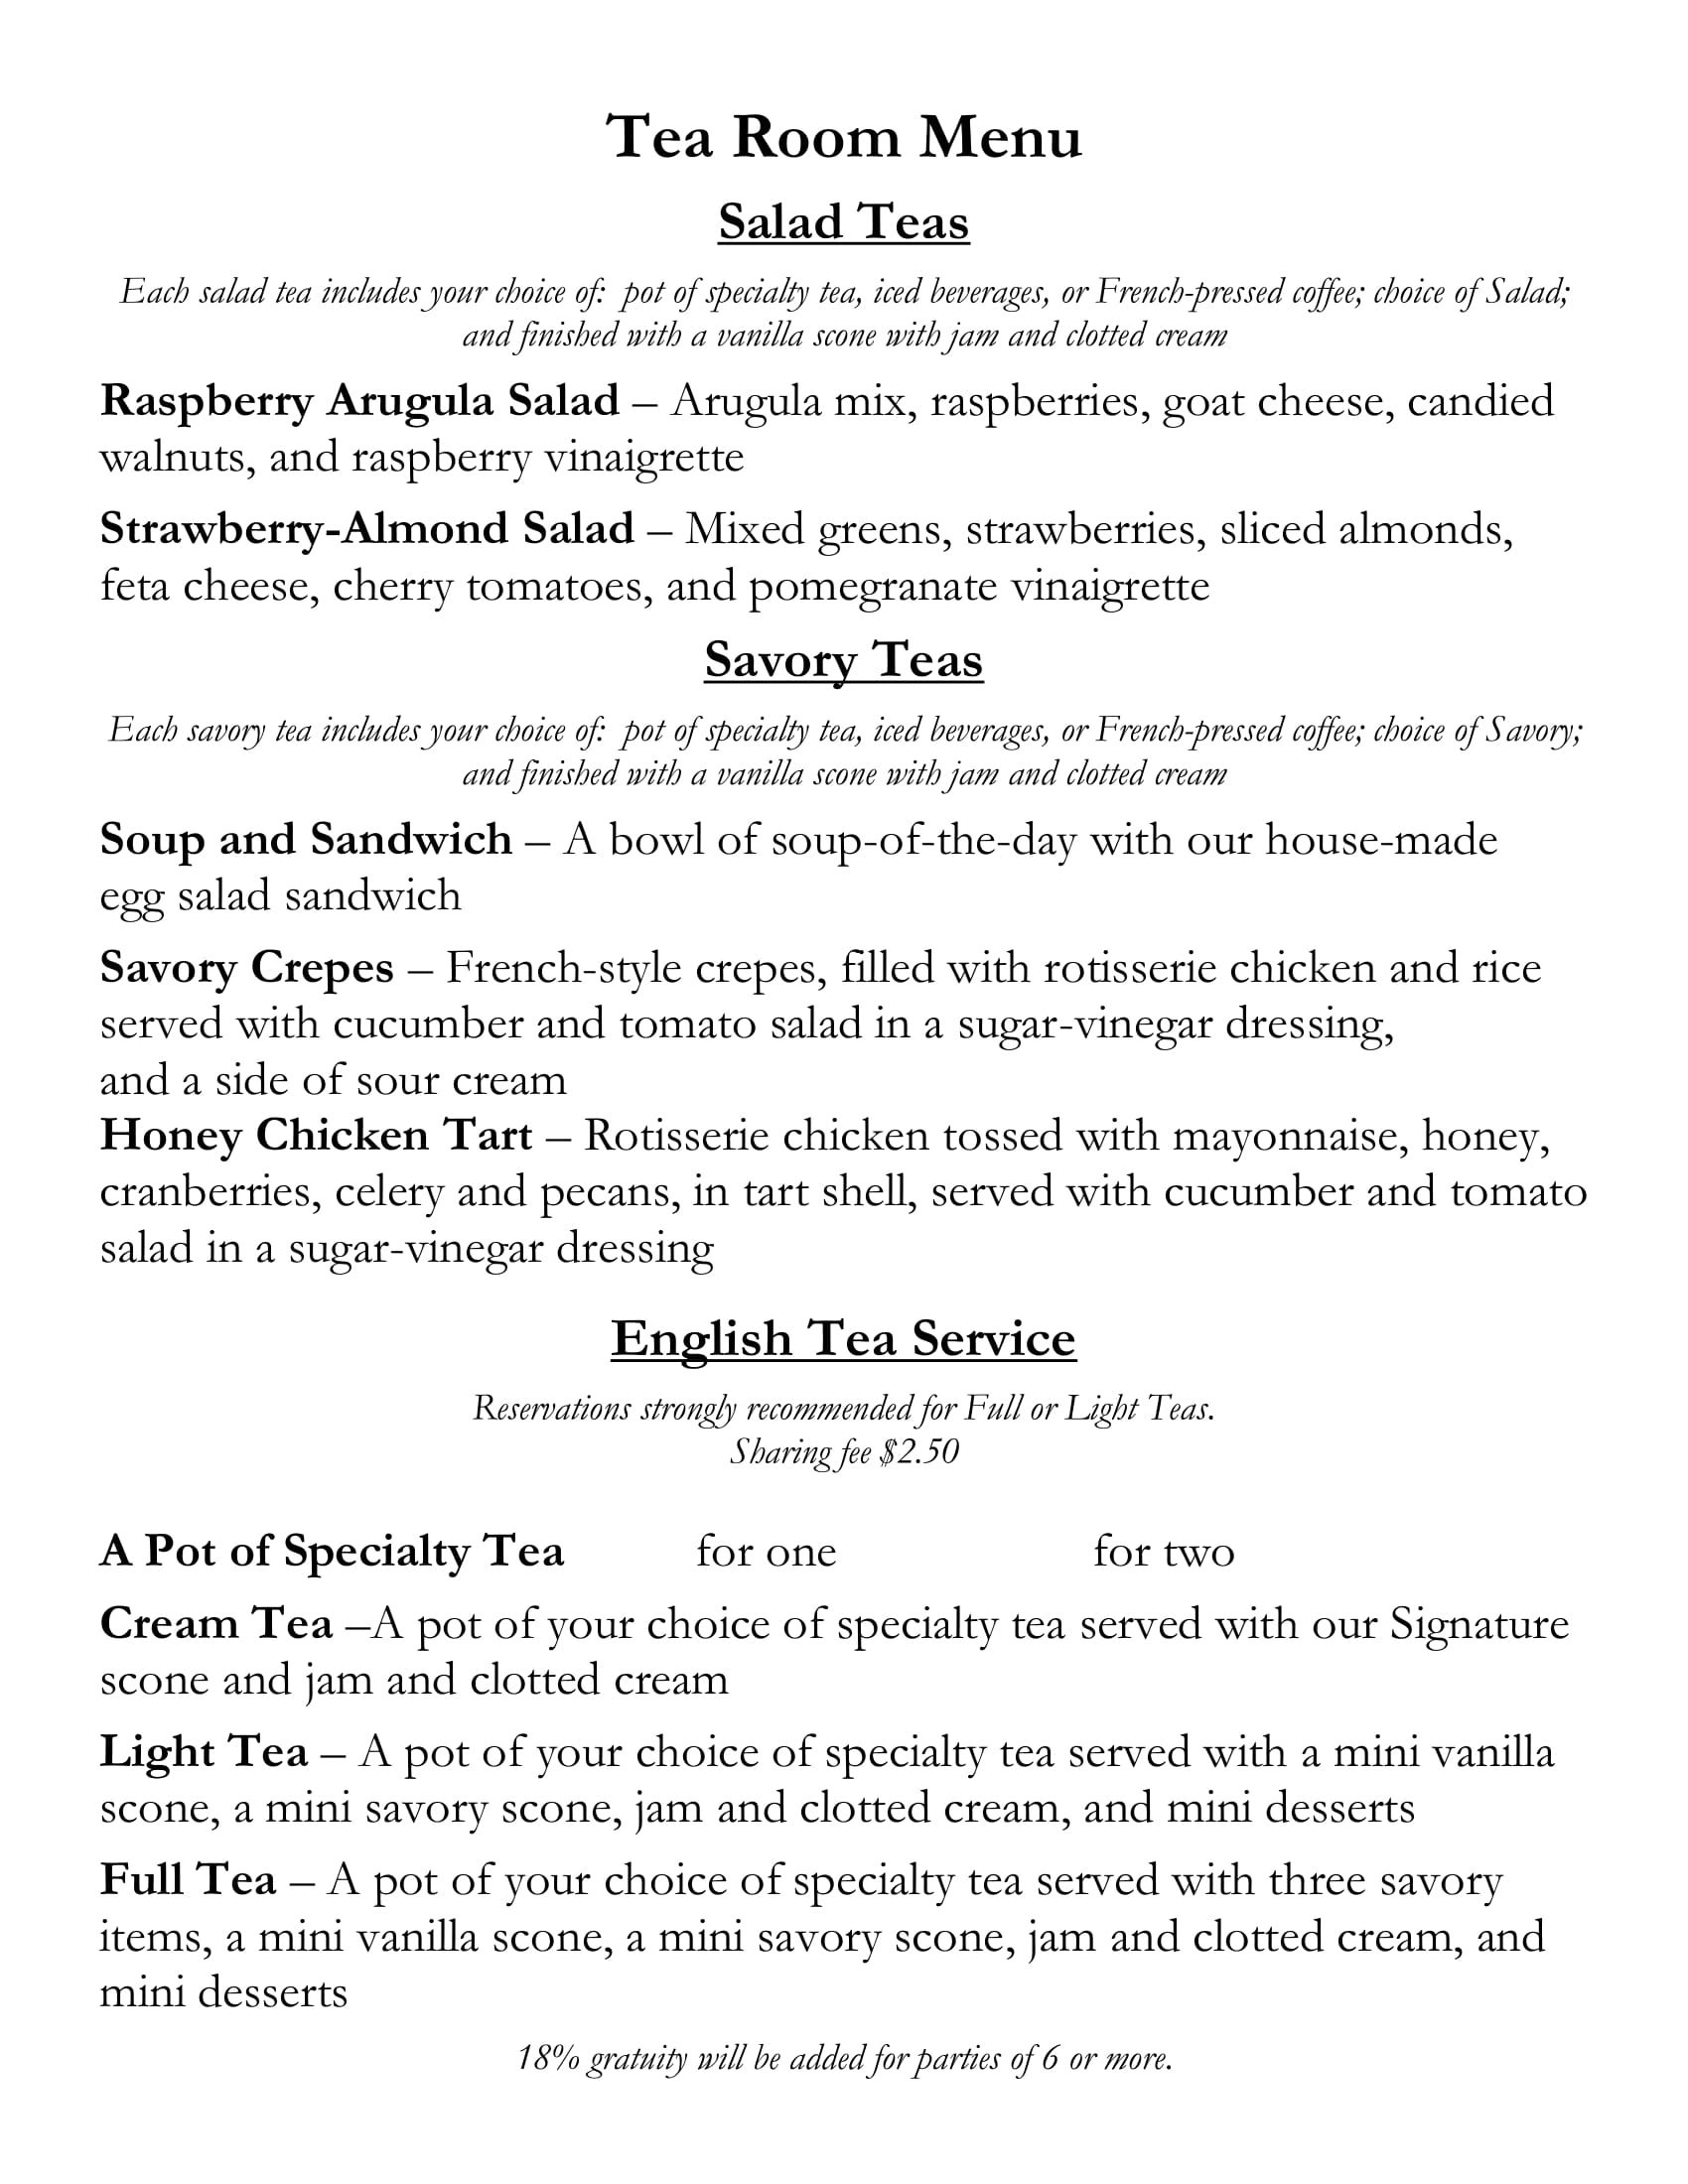 Tea Room Menu for Website 2019-05-16-1 2.jpg